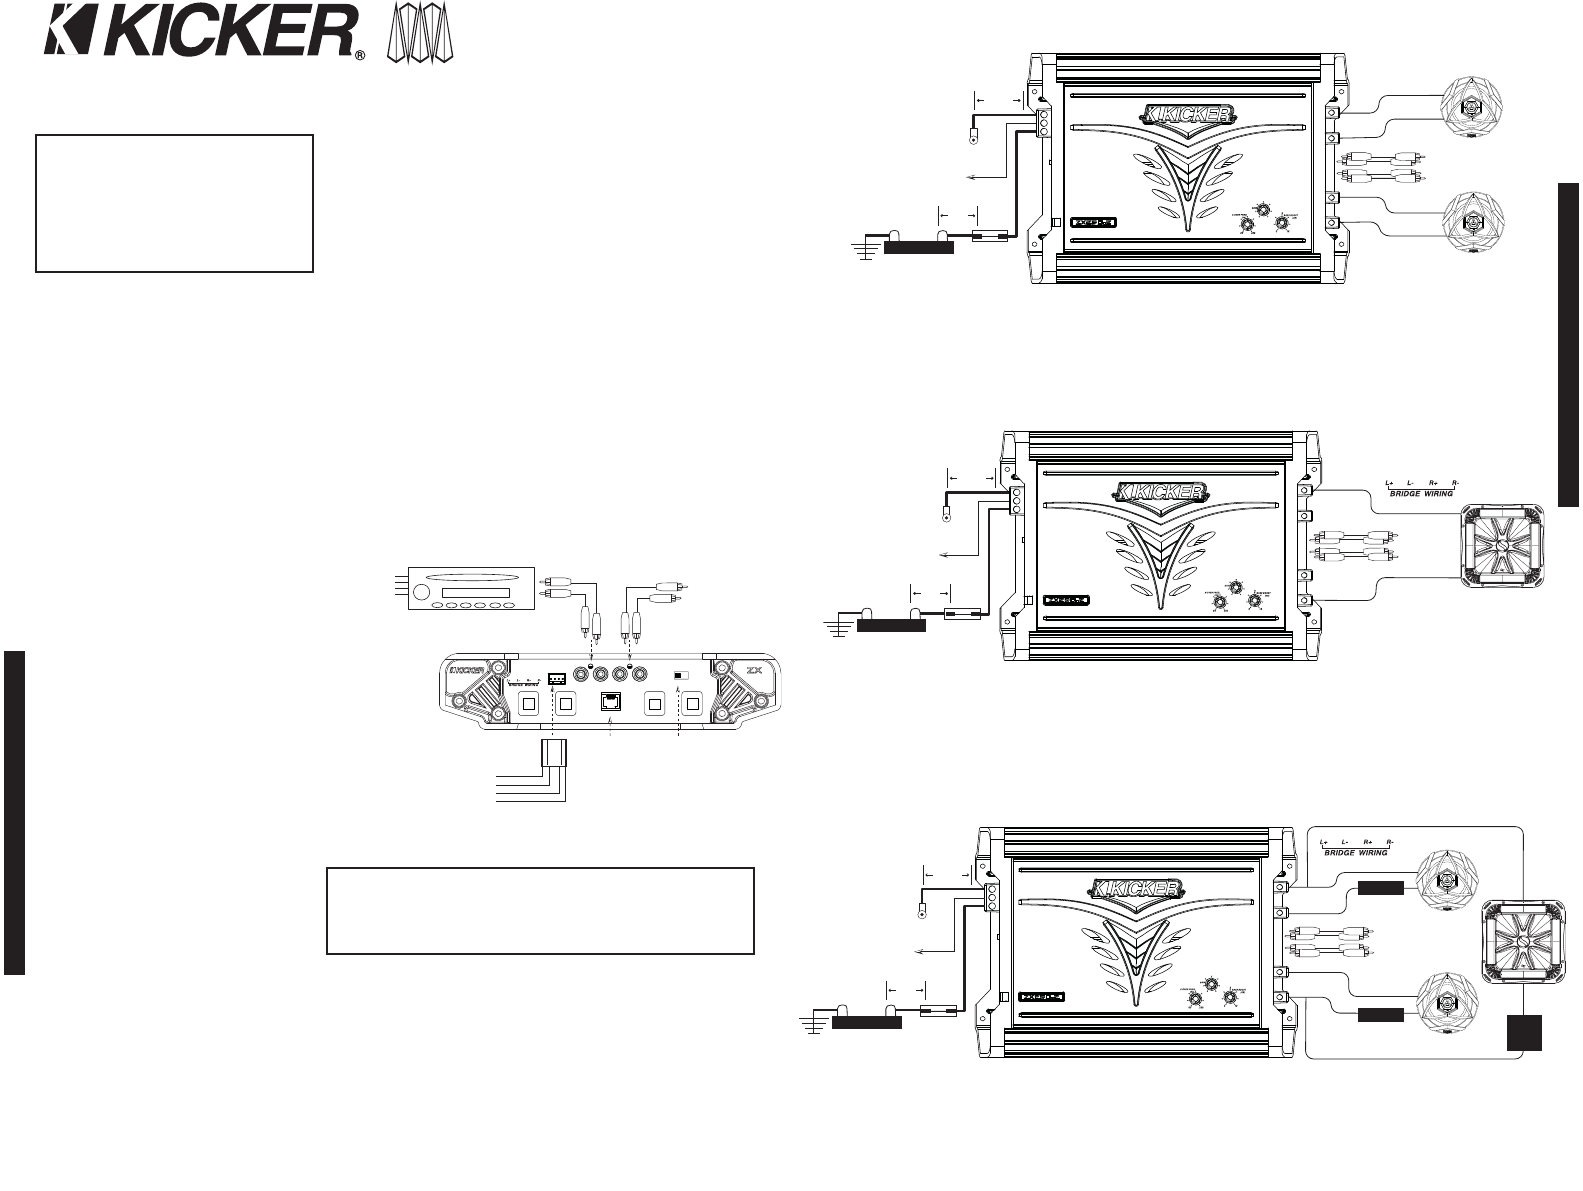 Kicker Amp Wiring Diagram : 25 Wiring Diagram Images